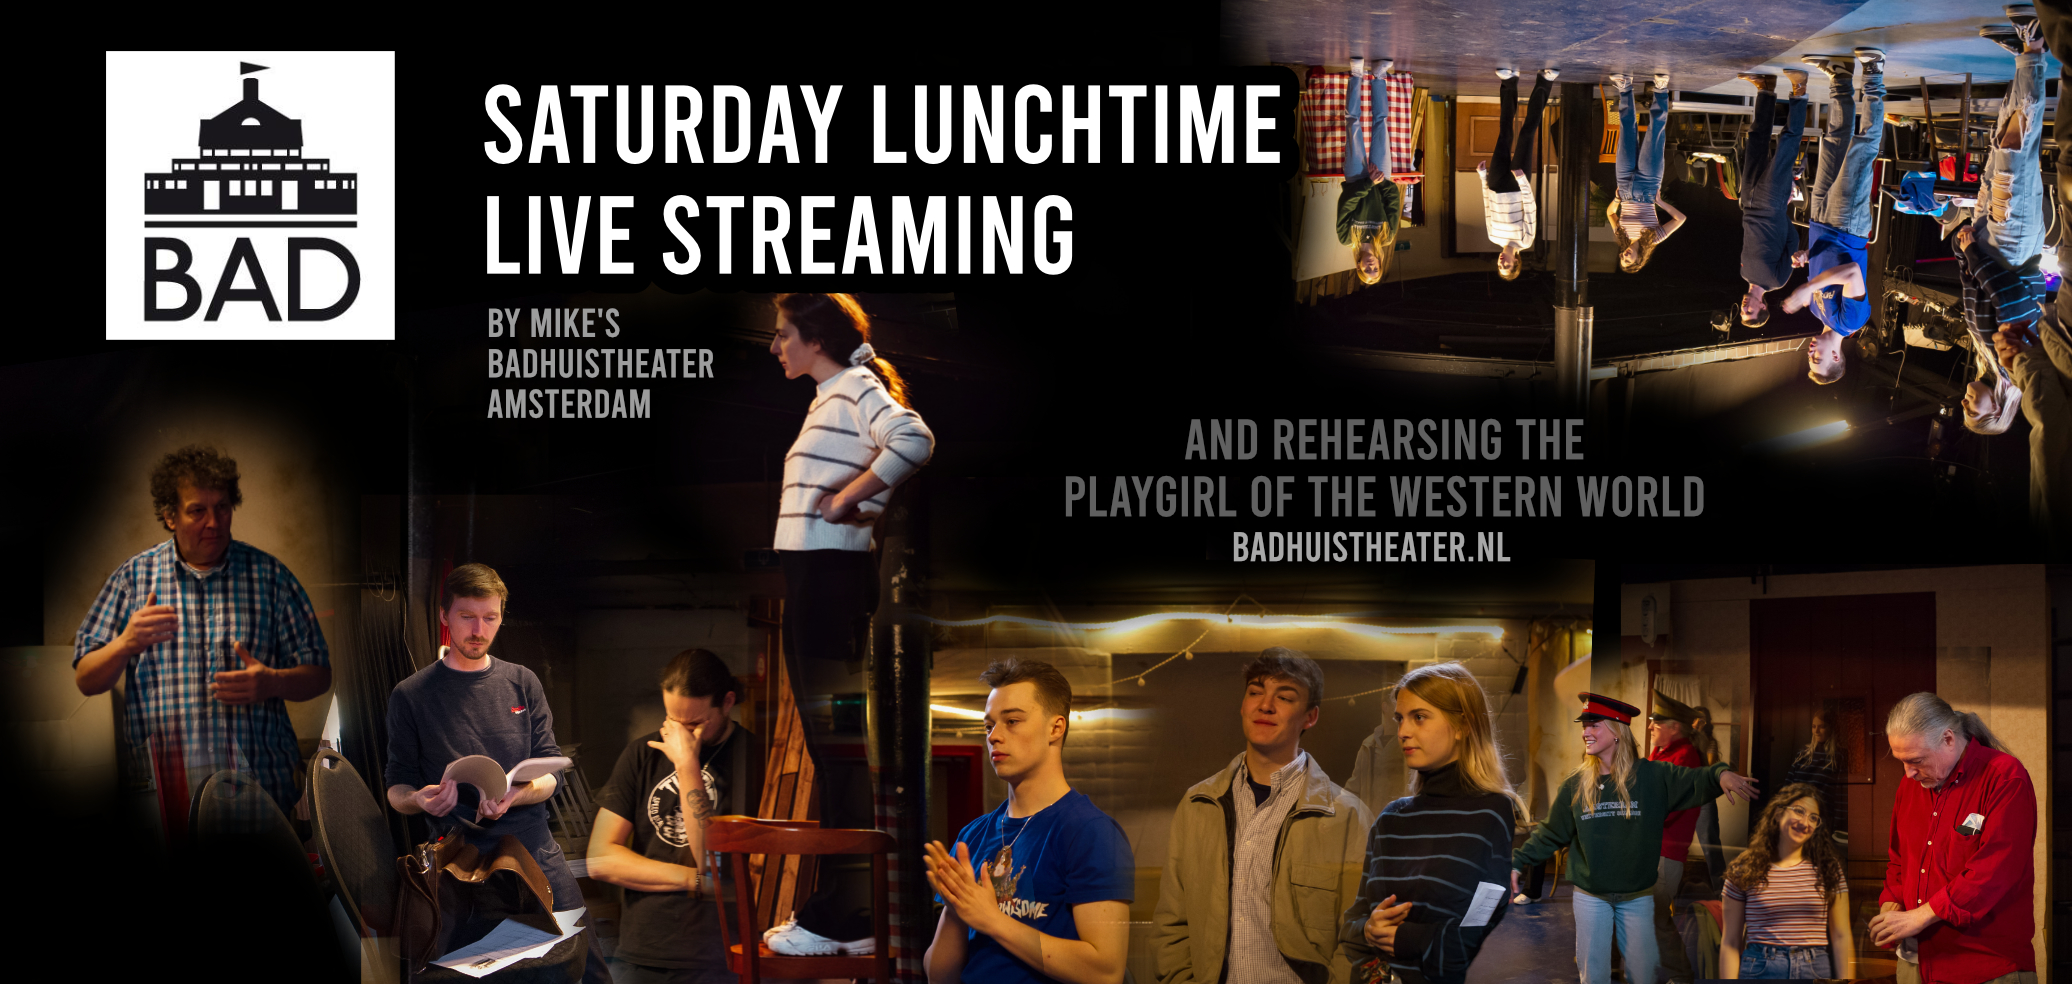 BADcast Saturday lunchtime live streaming